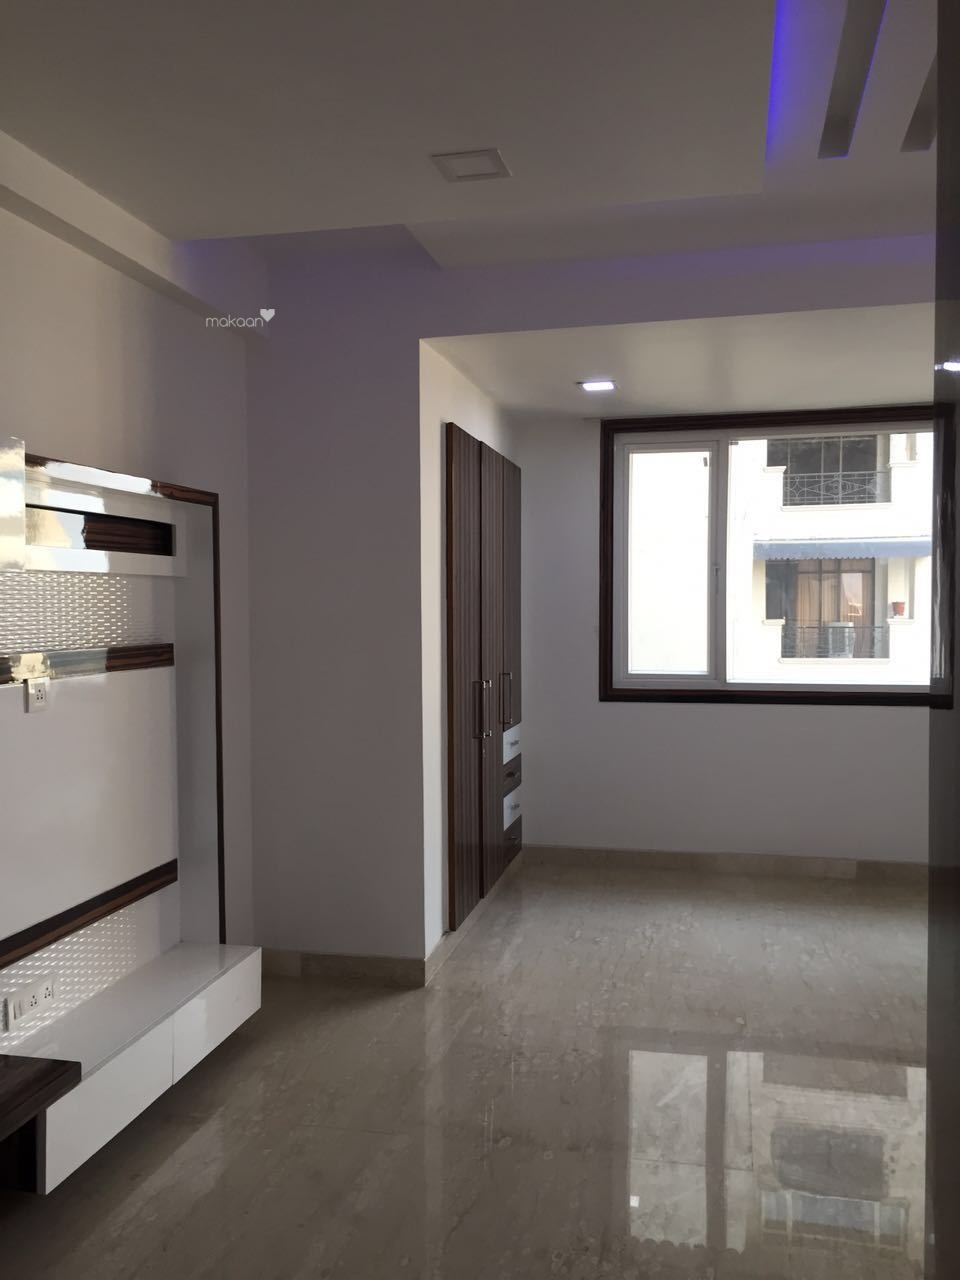 2100 sq ft 4BHK 4BHK+3T (2,100 sq ft) + Store Room Property By sinha real estate In Project, Sector 12 Dwarka